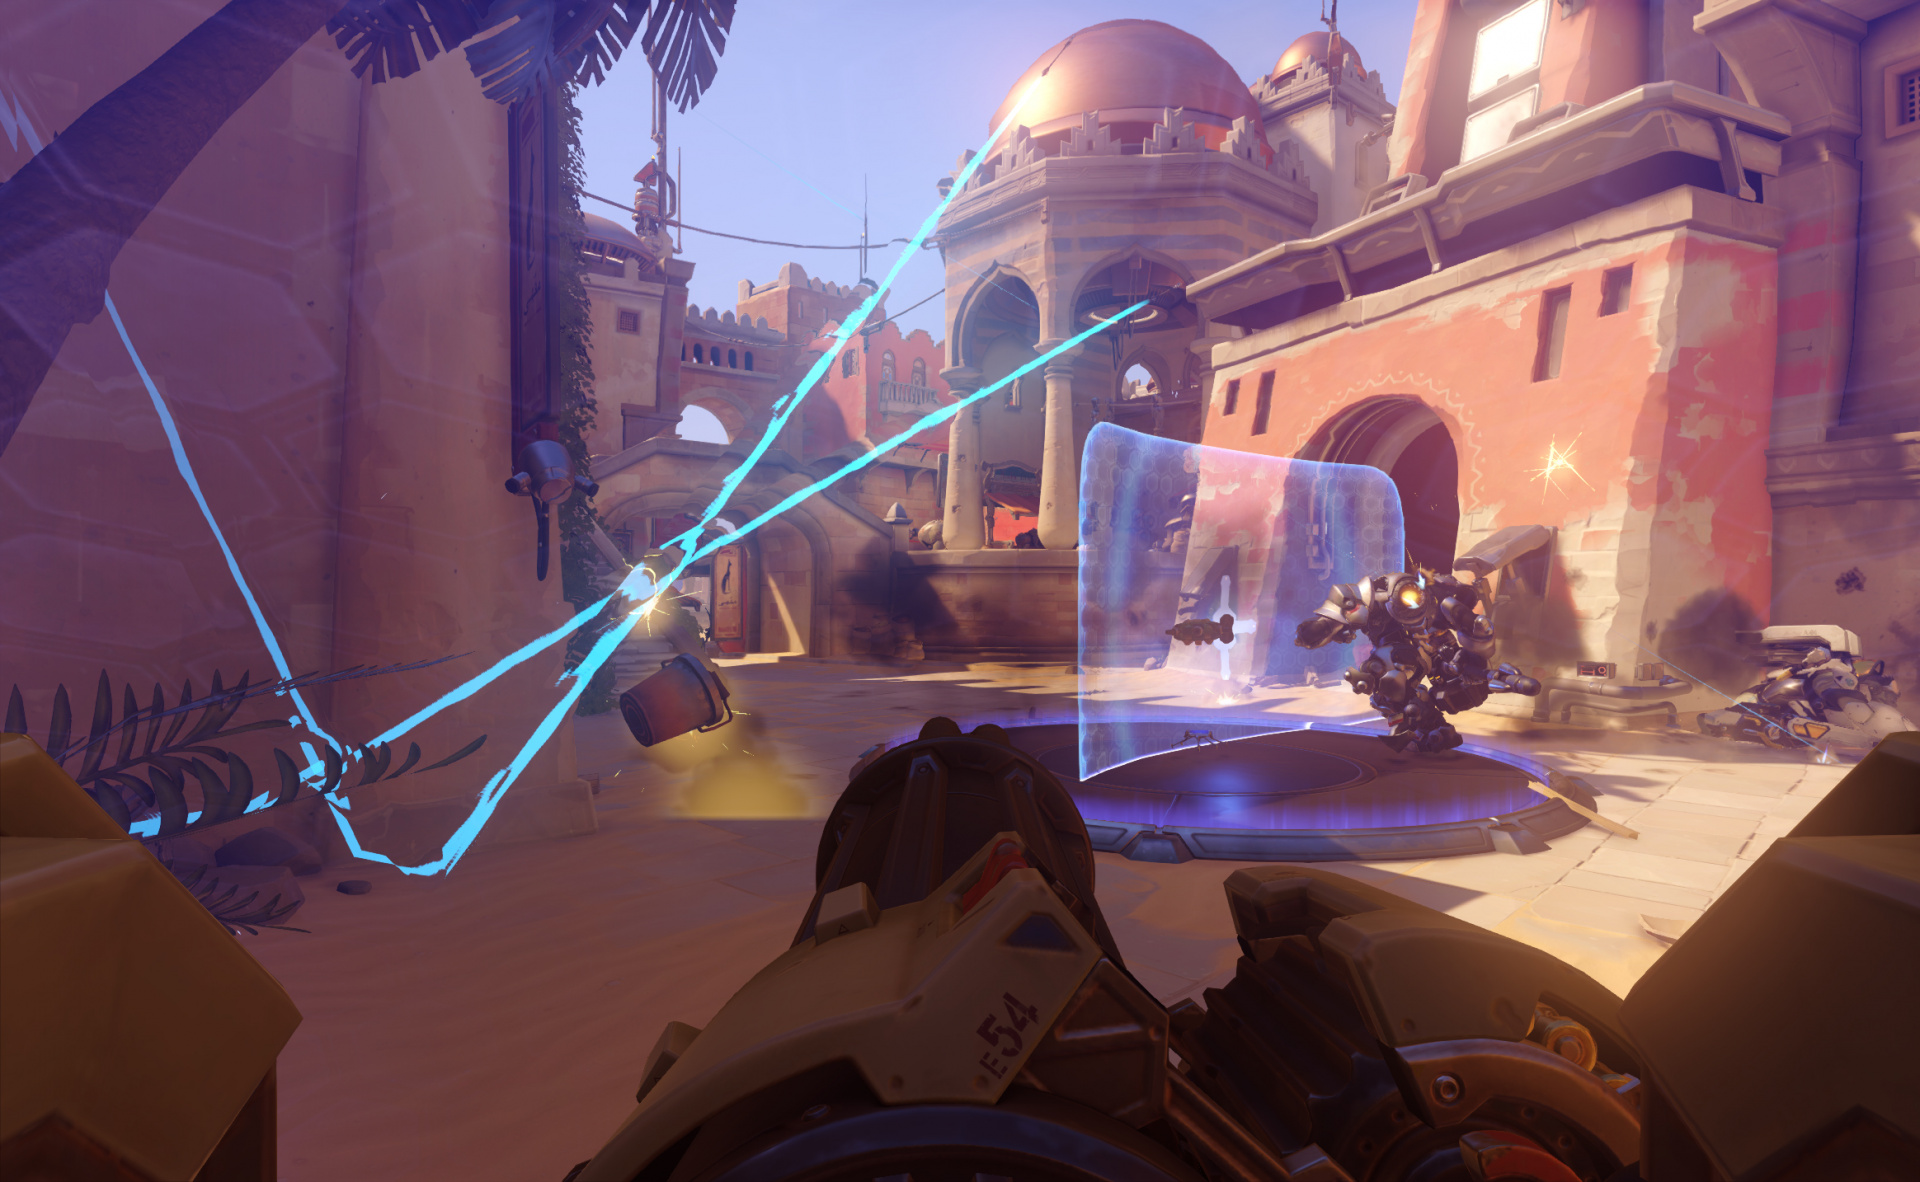 Game Of The Year 2016 3 Overwatch Push Square